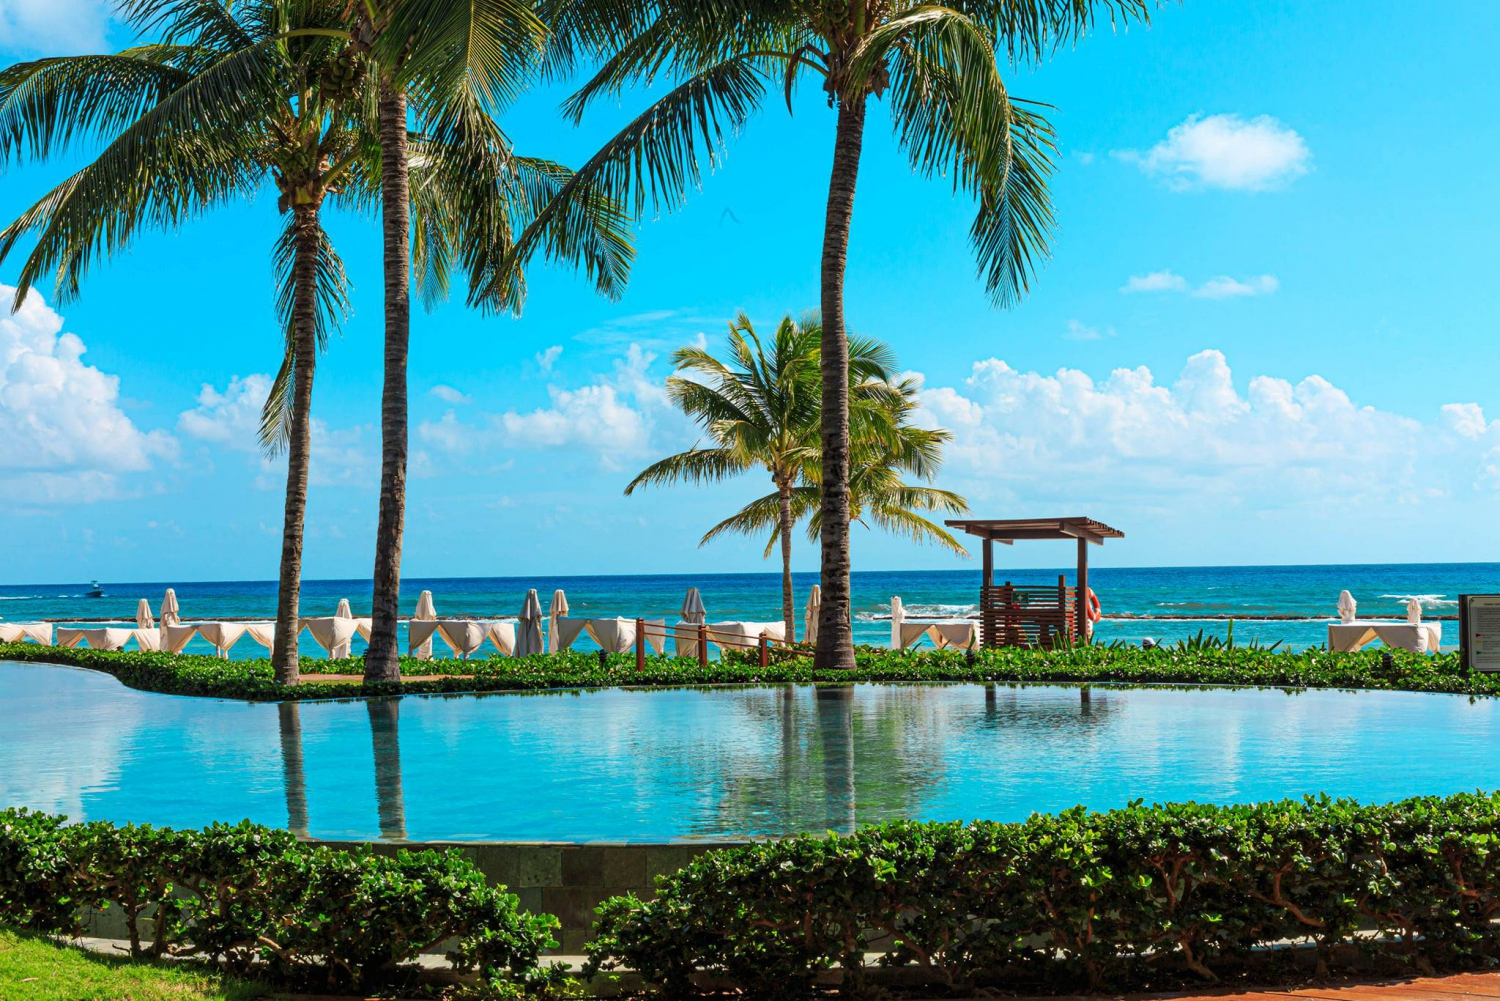 All-inclusive hotels to visit with the family in the Riviera Maya